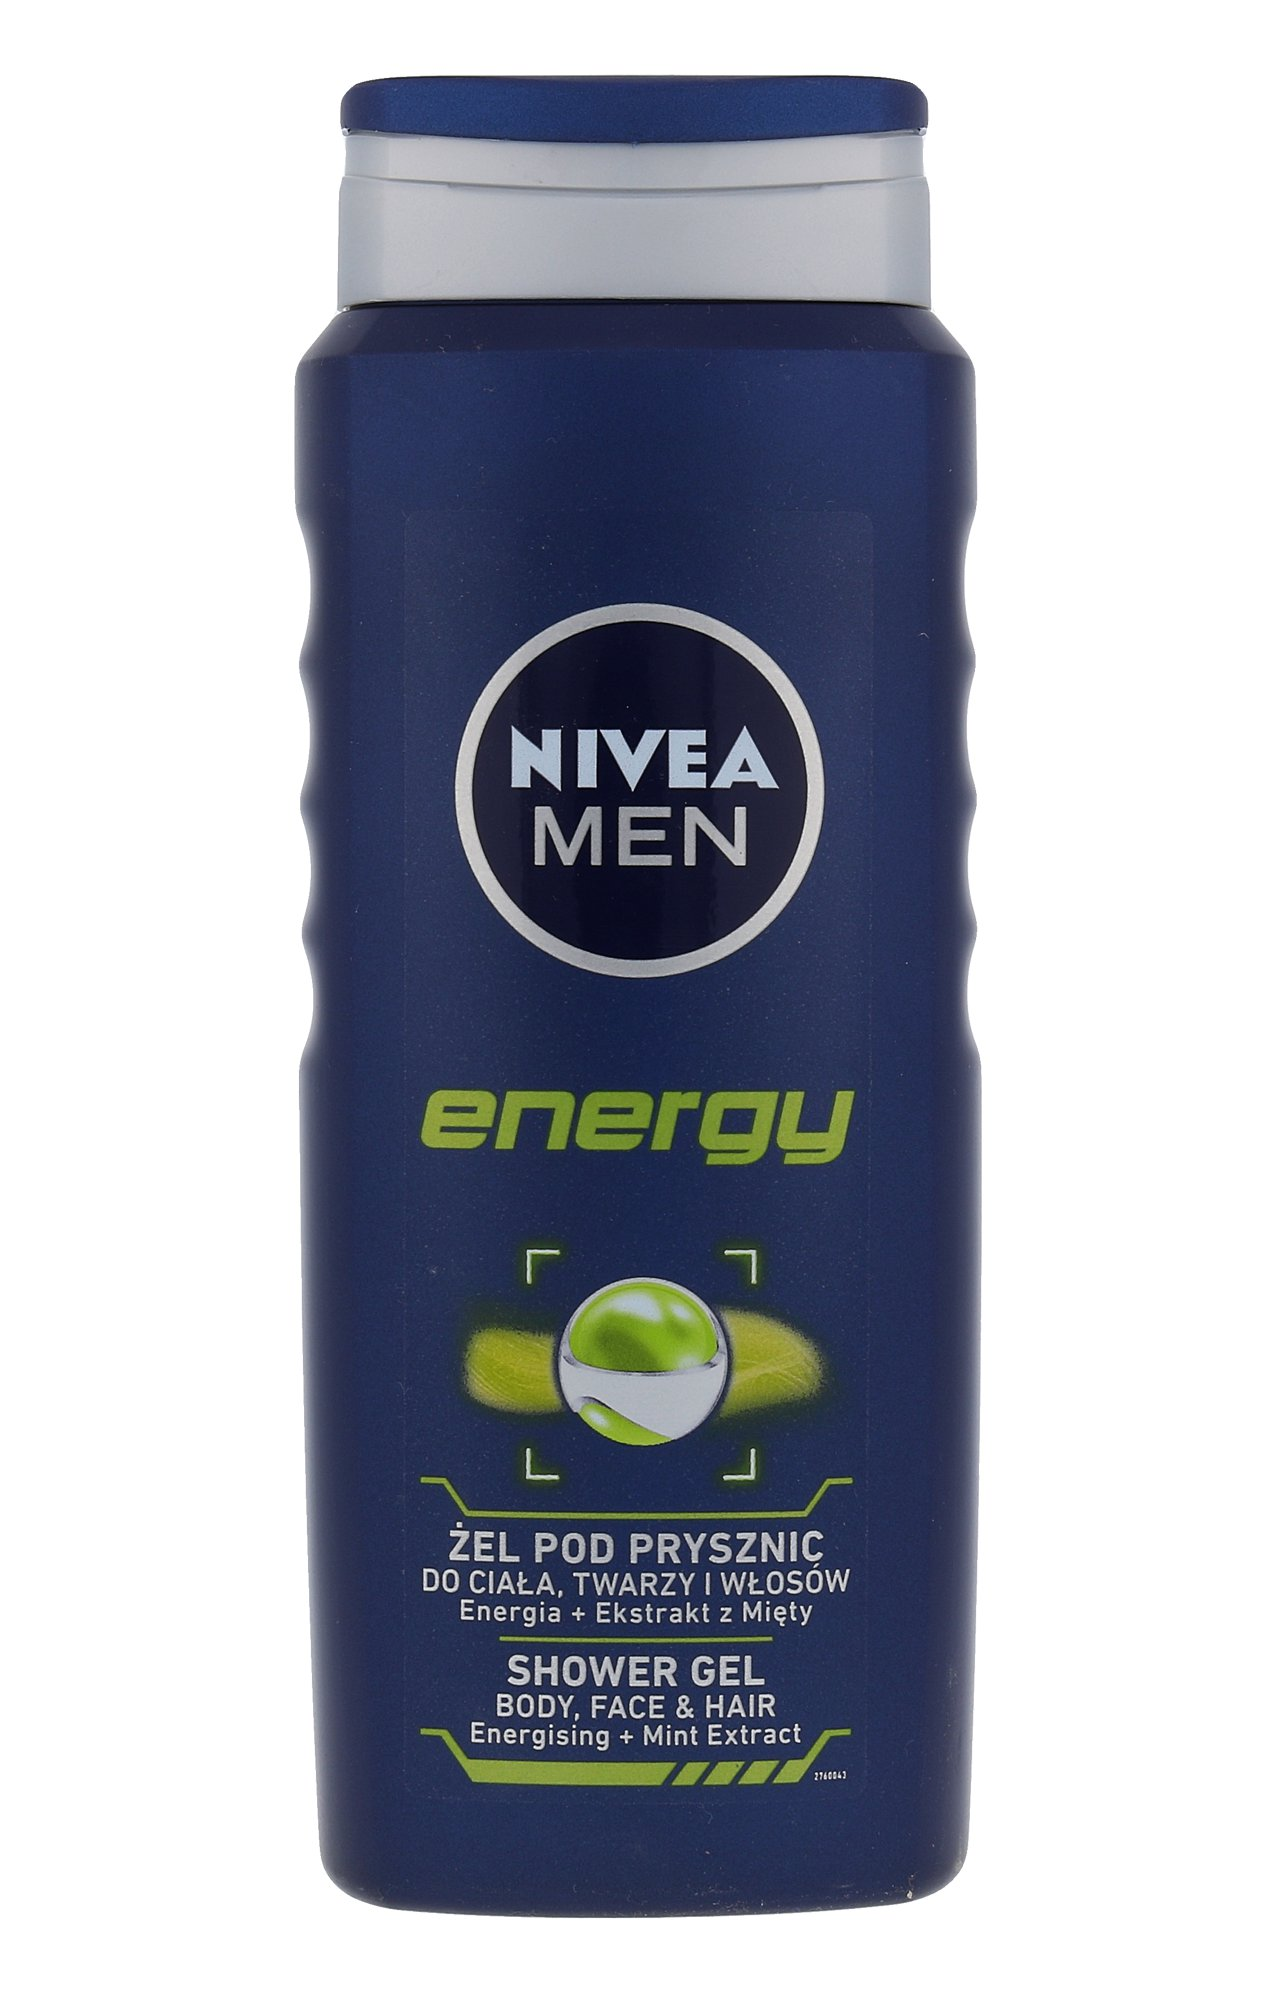 Nivea Men Energy, tusfürdő gél 500ml